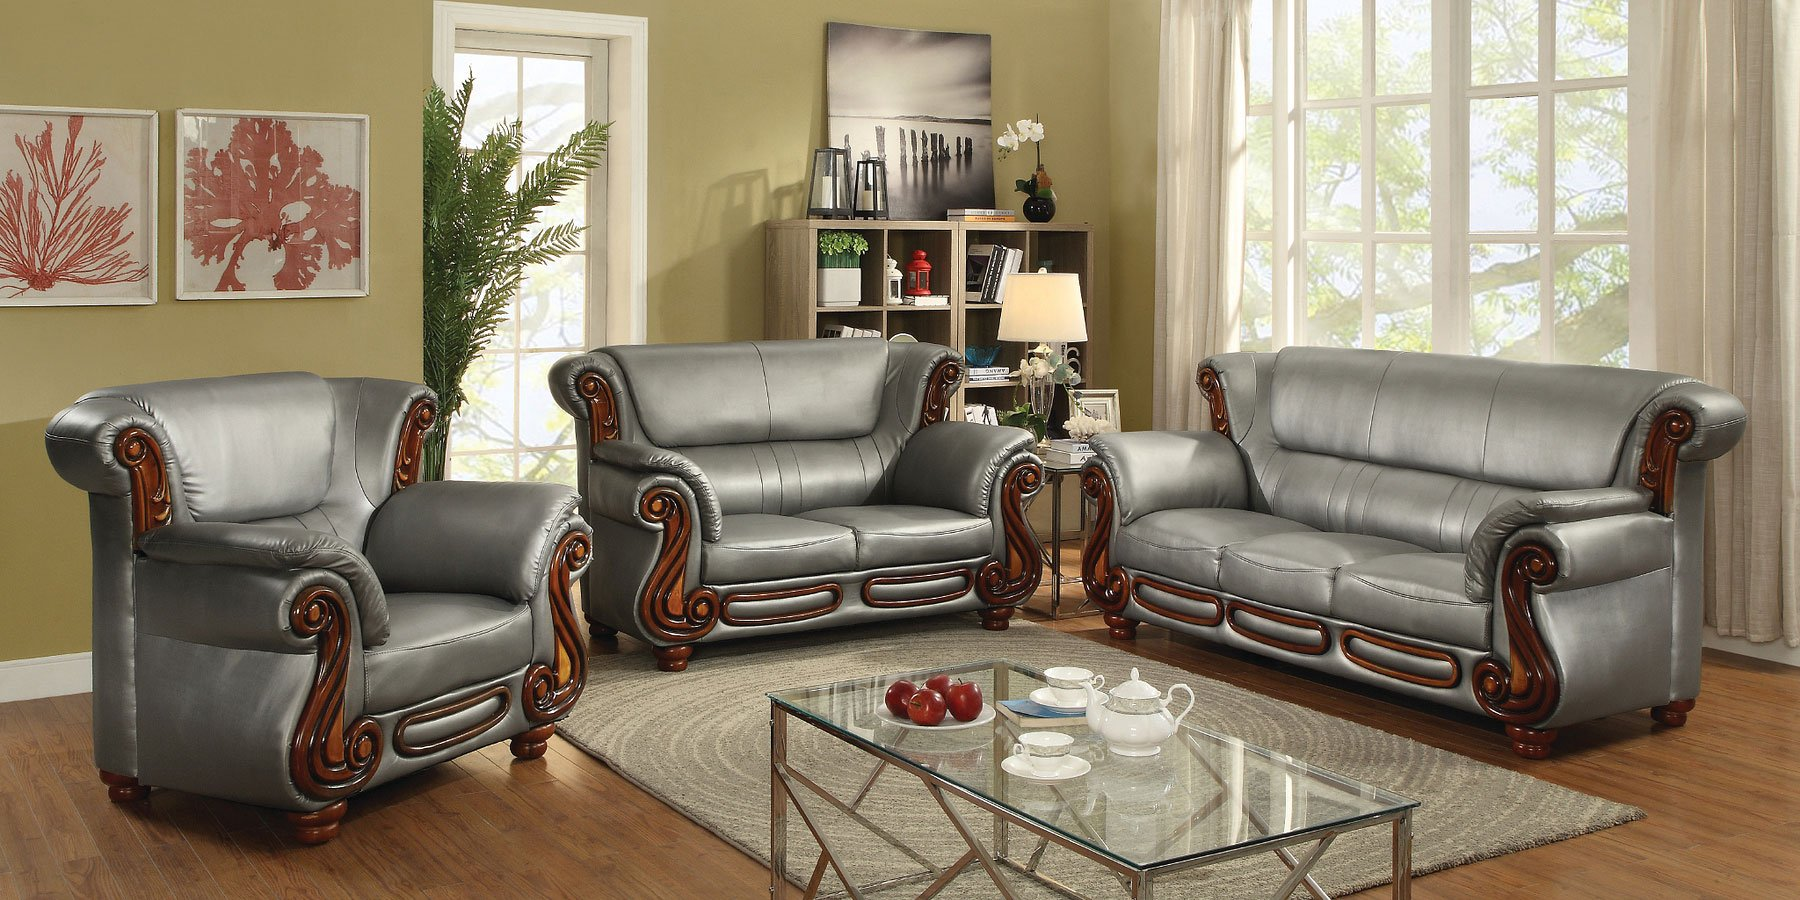 G826 living room set antique silver by glory furniture - Antique living room furniture sets ...